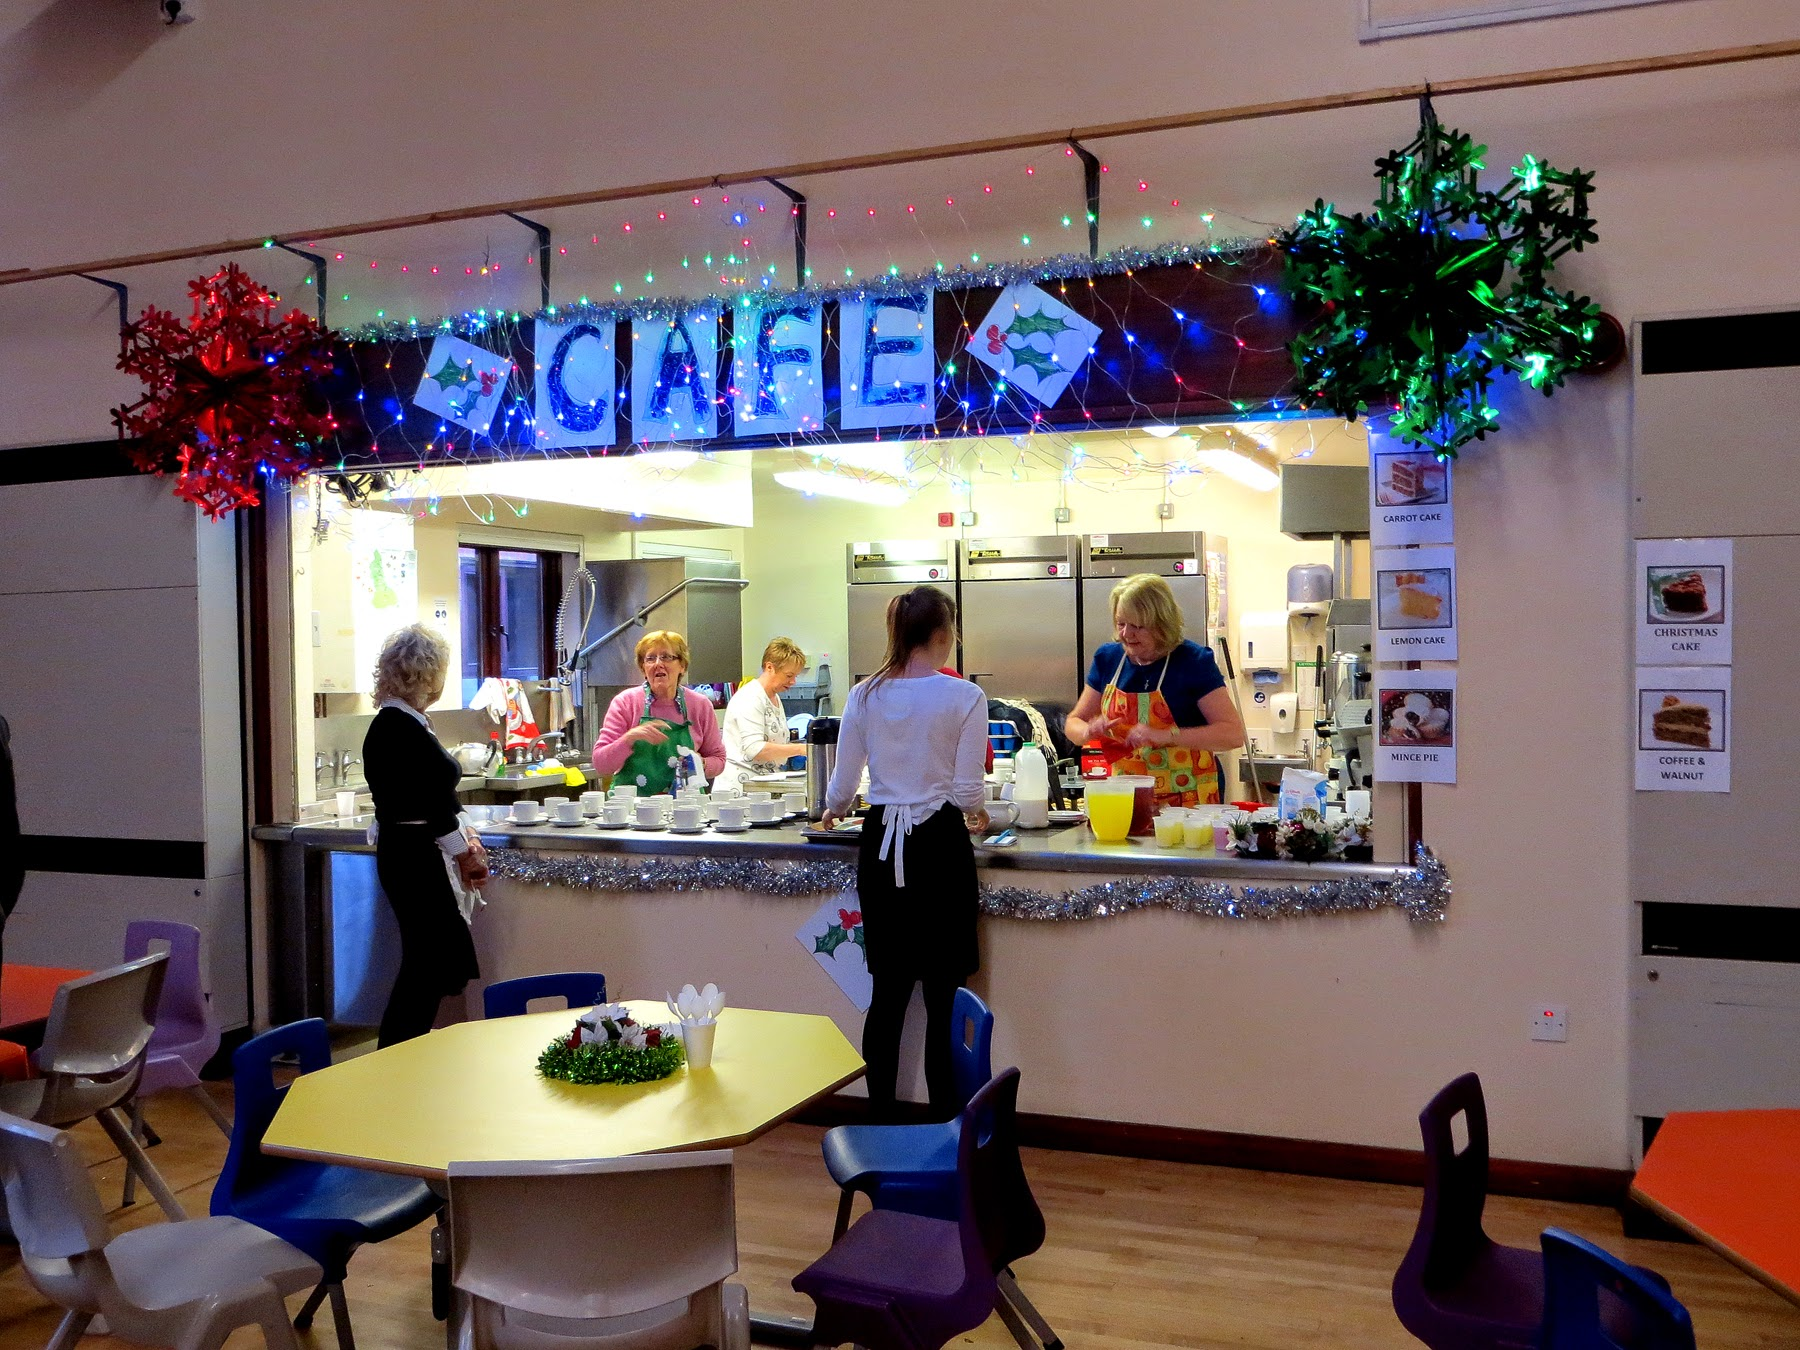 Photo: Preparations in full swing at the Cafe